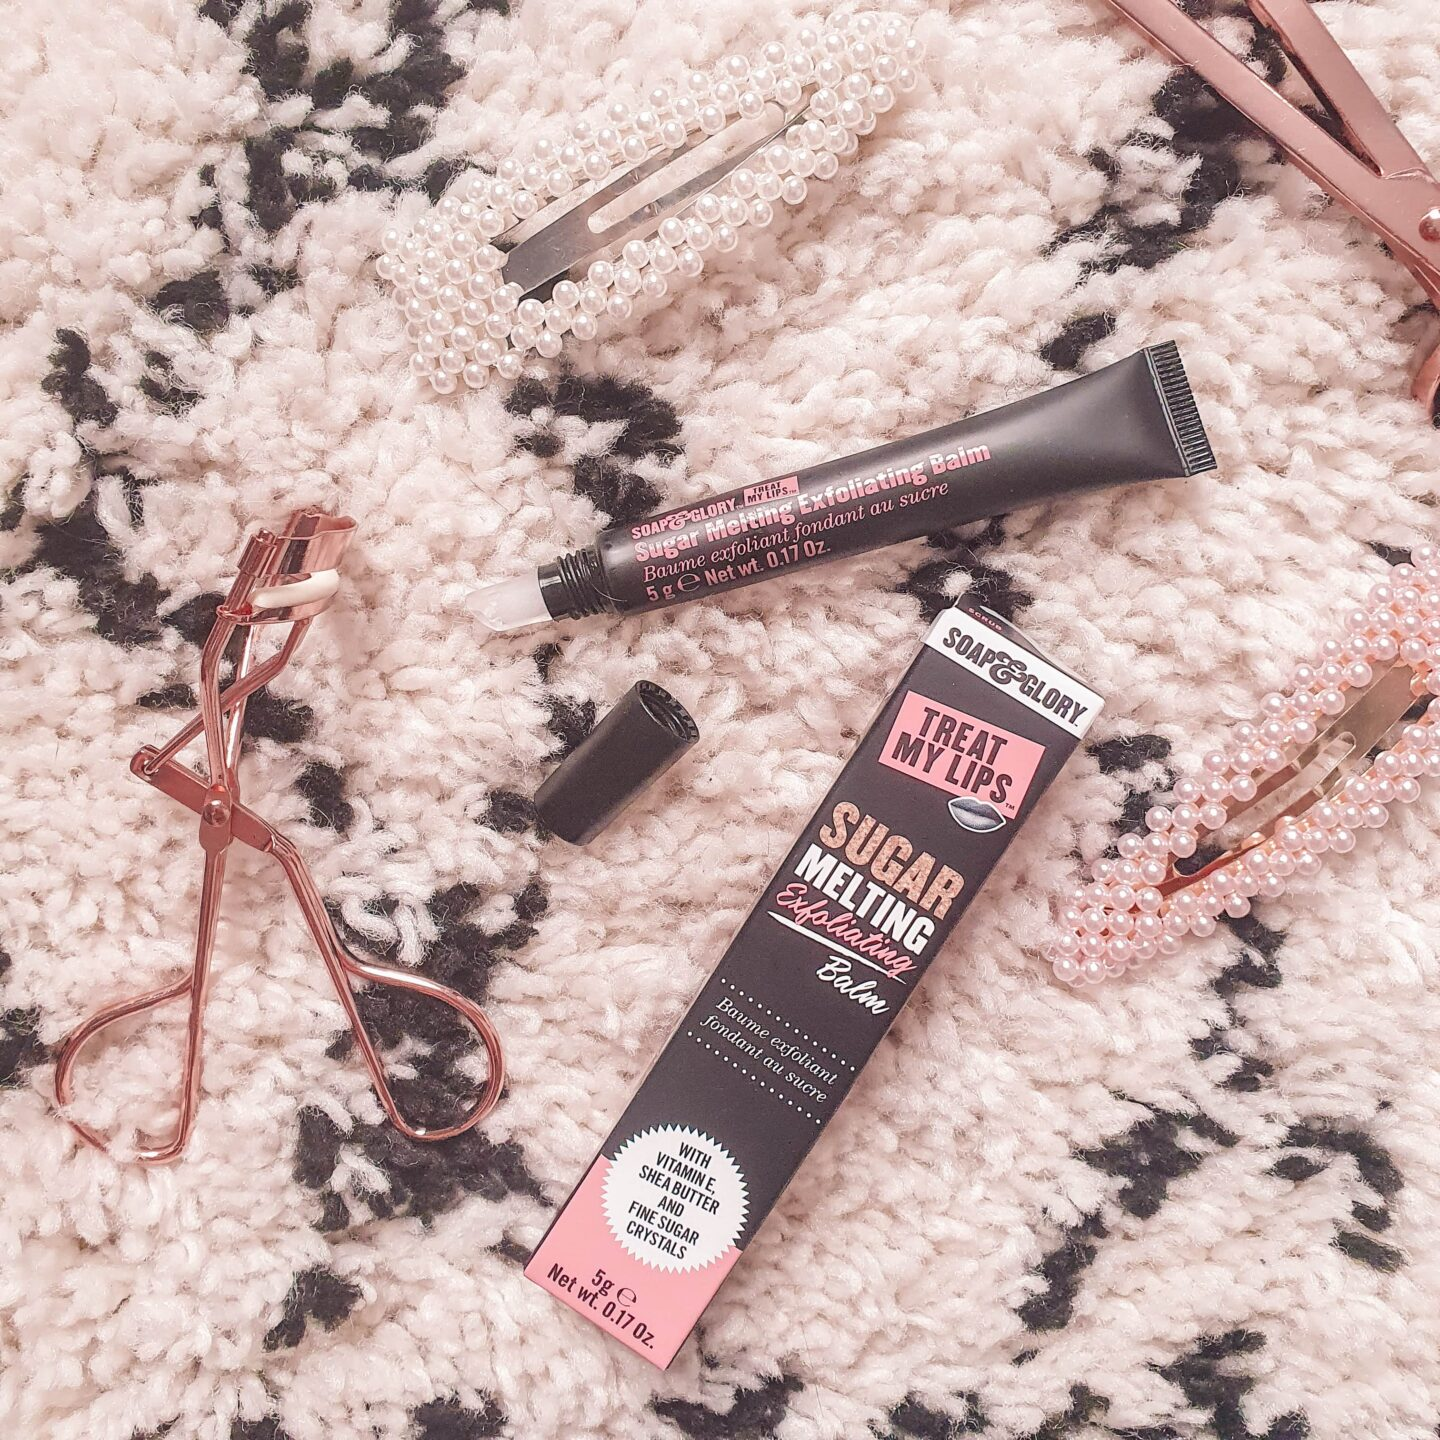 Soap and Glory Sugar Melting Exfoliating Balm Review